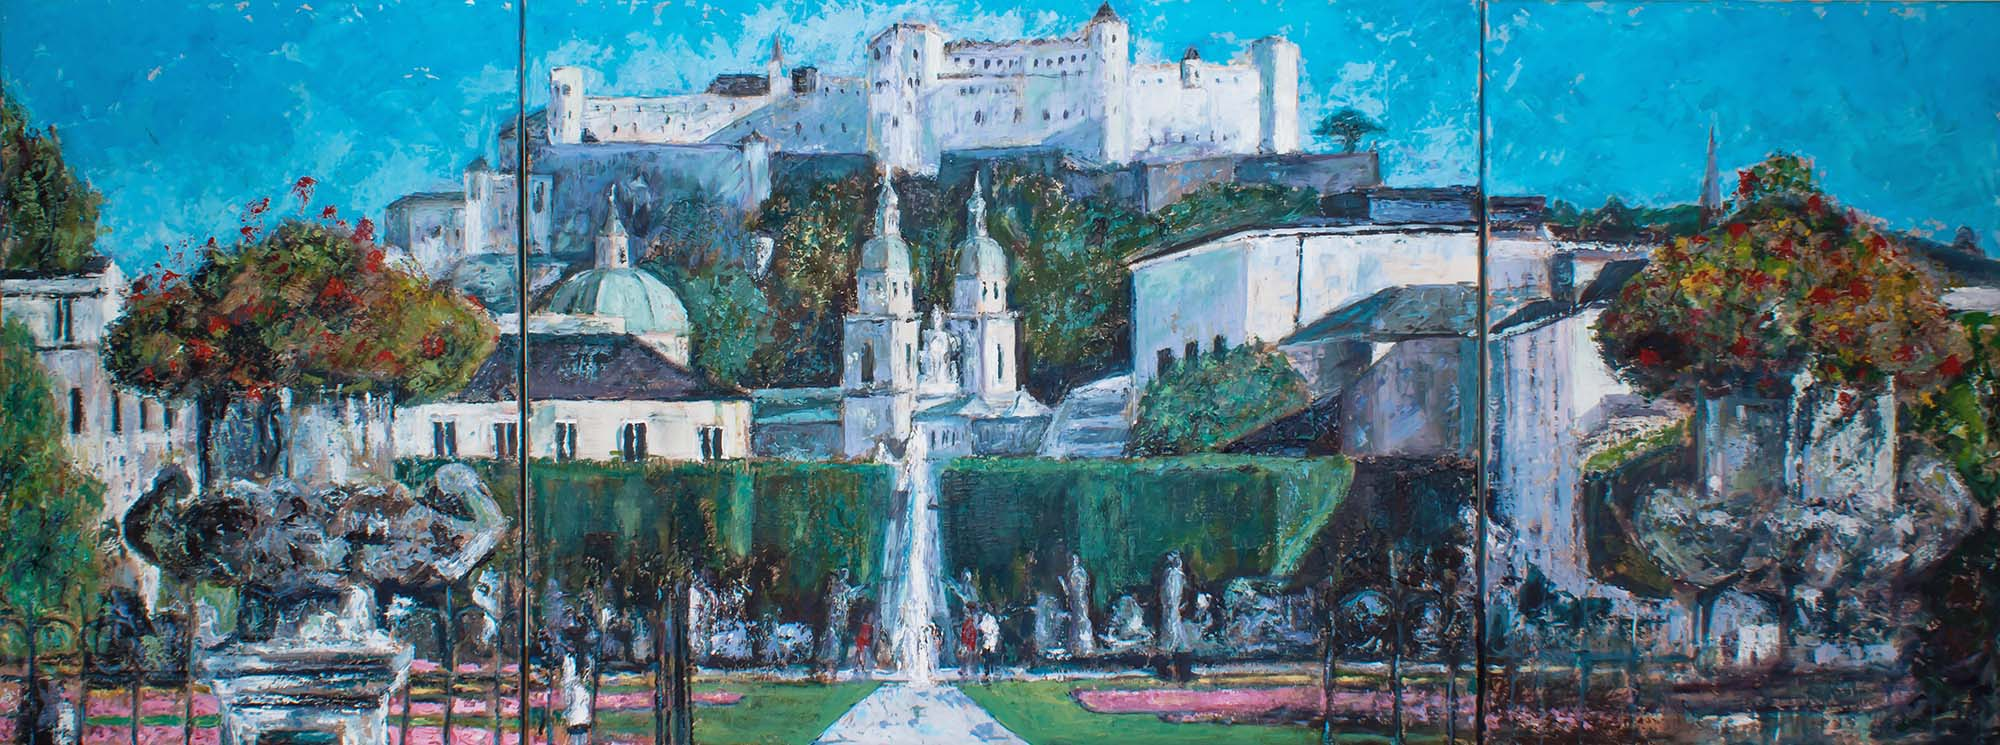 Panorama view of Salzburg Mirabell garden, old town and castle, Austria by Ria Kieboom